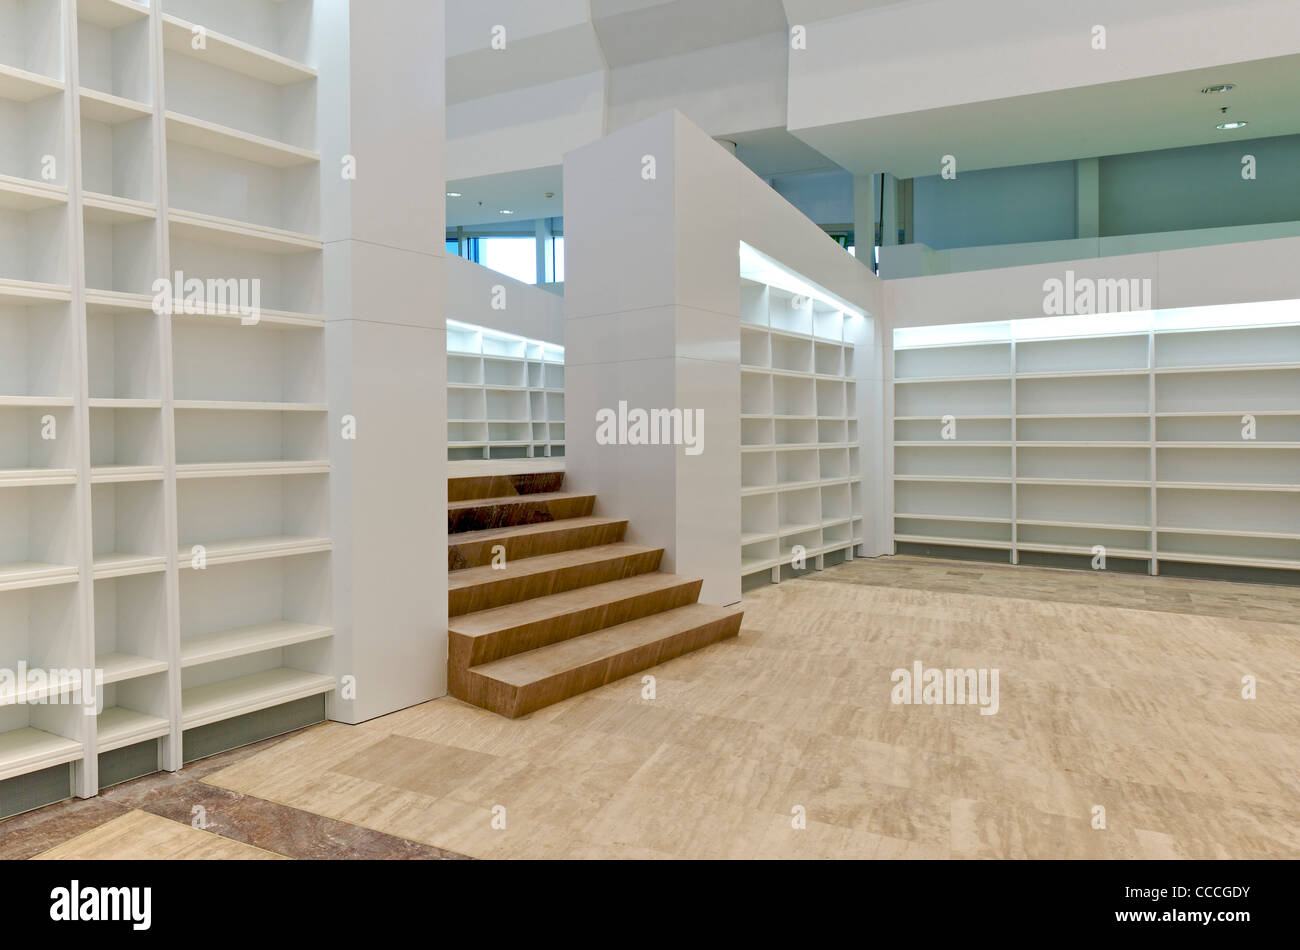 City of culture galicia spain peter eisenman architects interior view of reading area in library bookshelves and marble floor